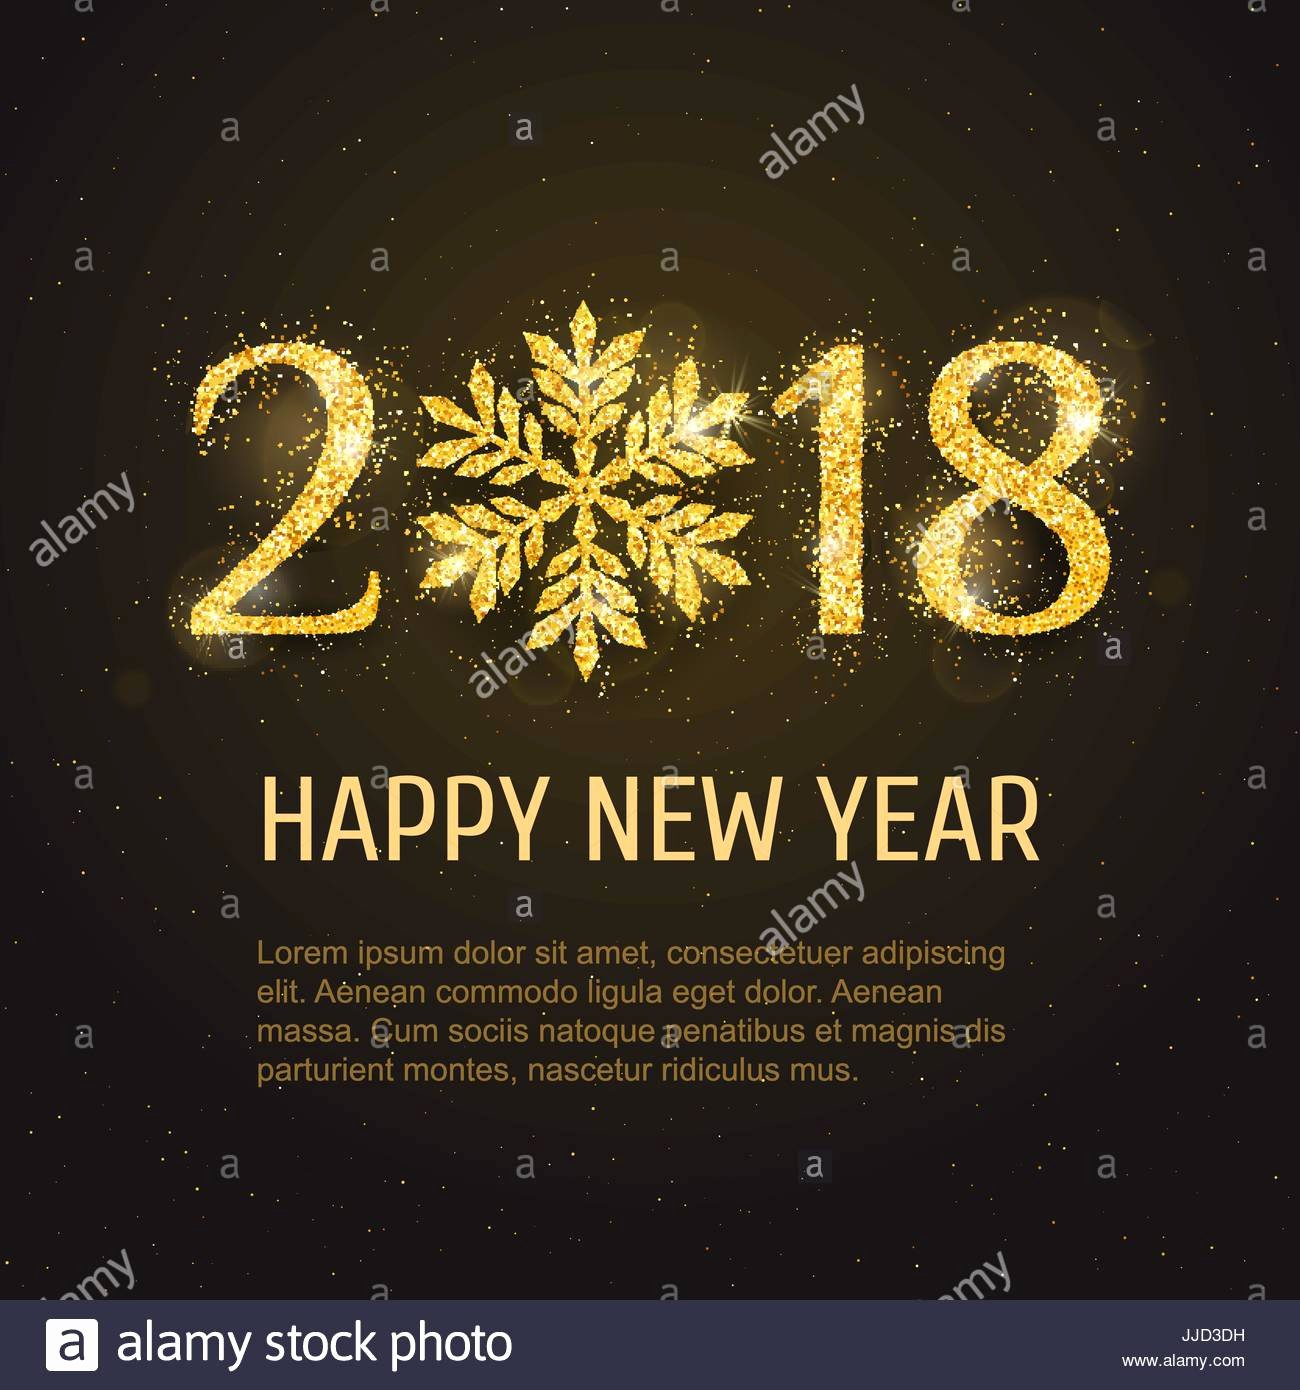 New Year Card Template Luxury Vector 2018 Happy New Year and Merry Christmas Greeting